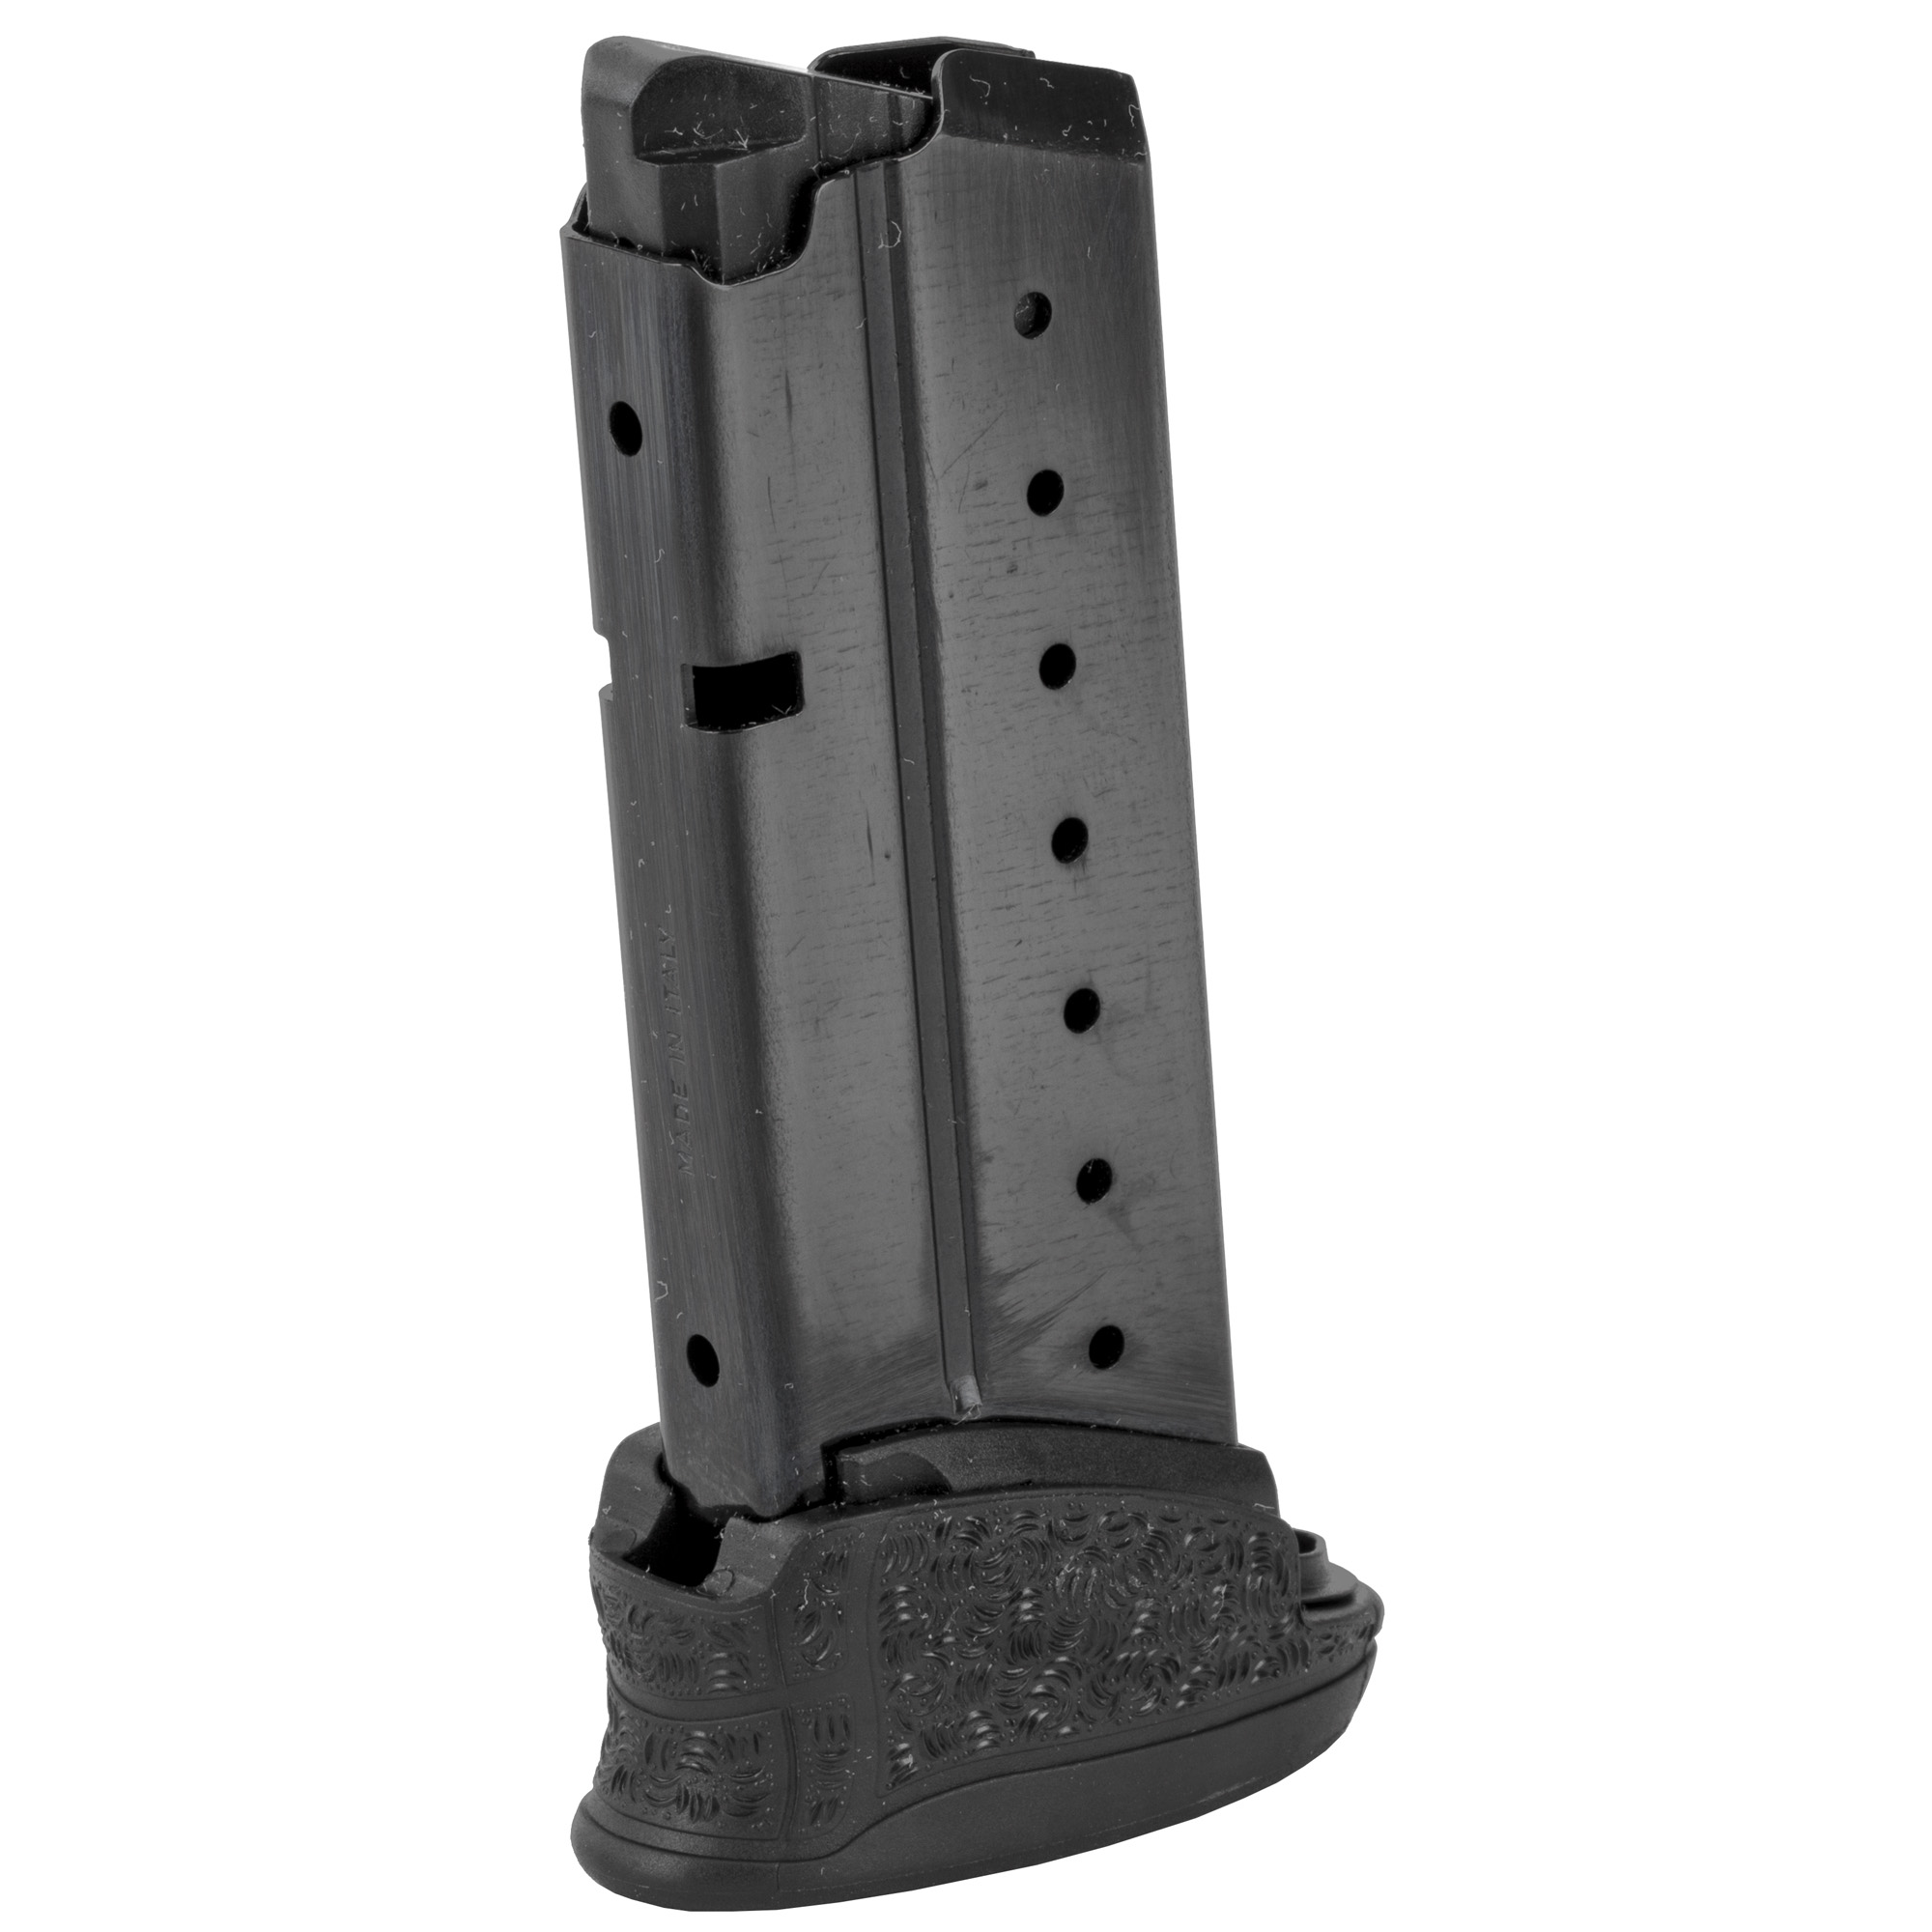 Walther Arms 2807793 PPS 9mm Luger M2 7rd Black Detachable